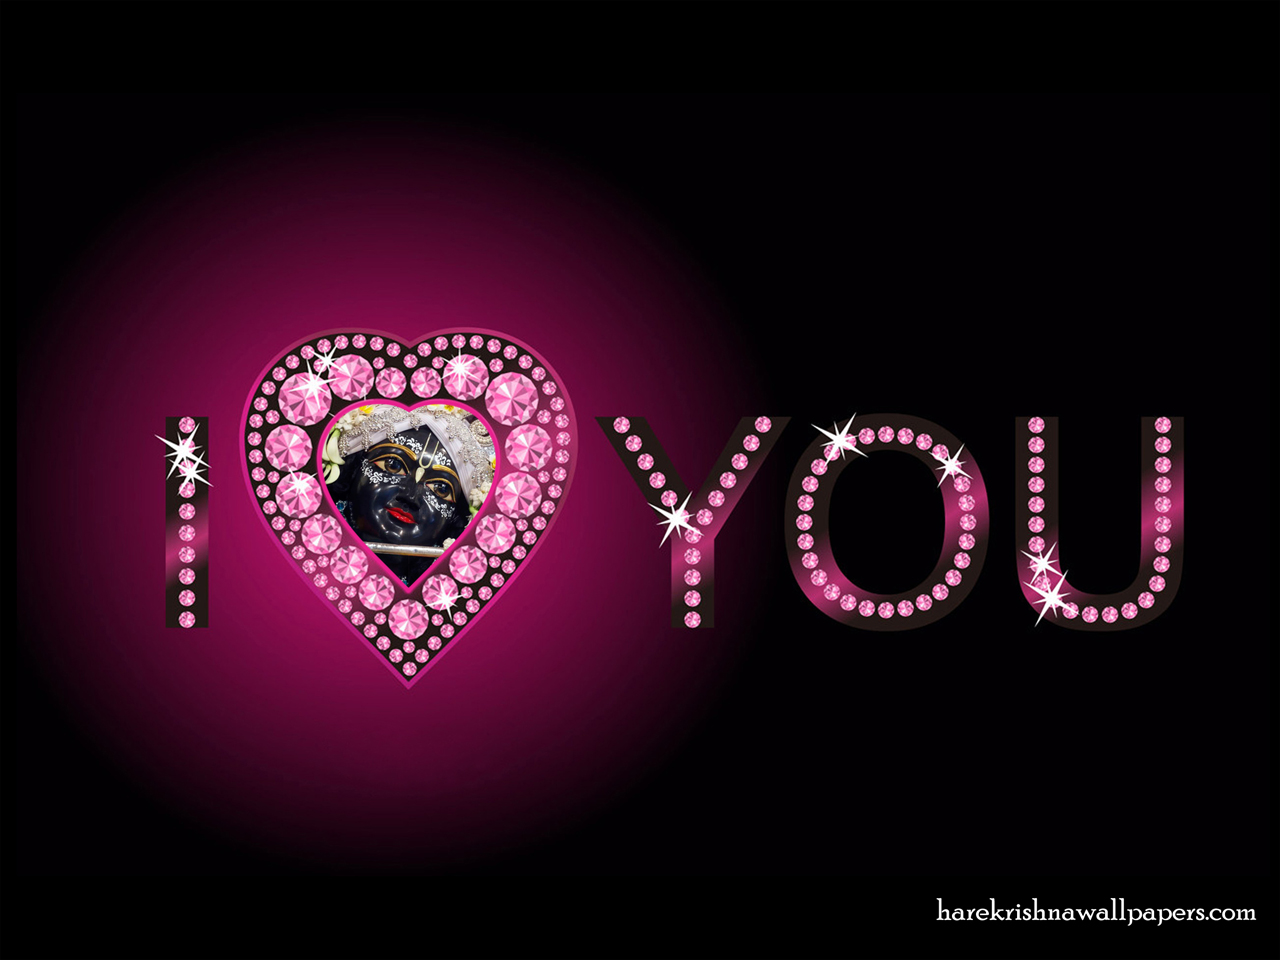 I Love You Madhava Wallpaper (005) Size 1280x960 Download